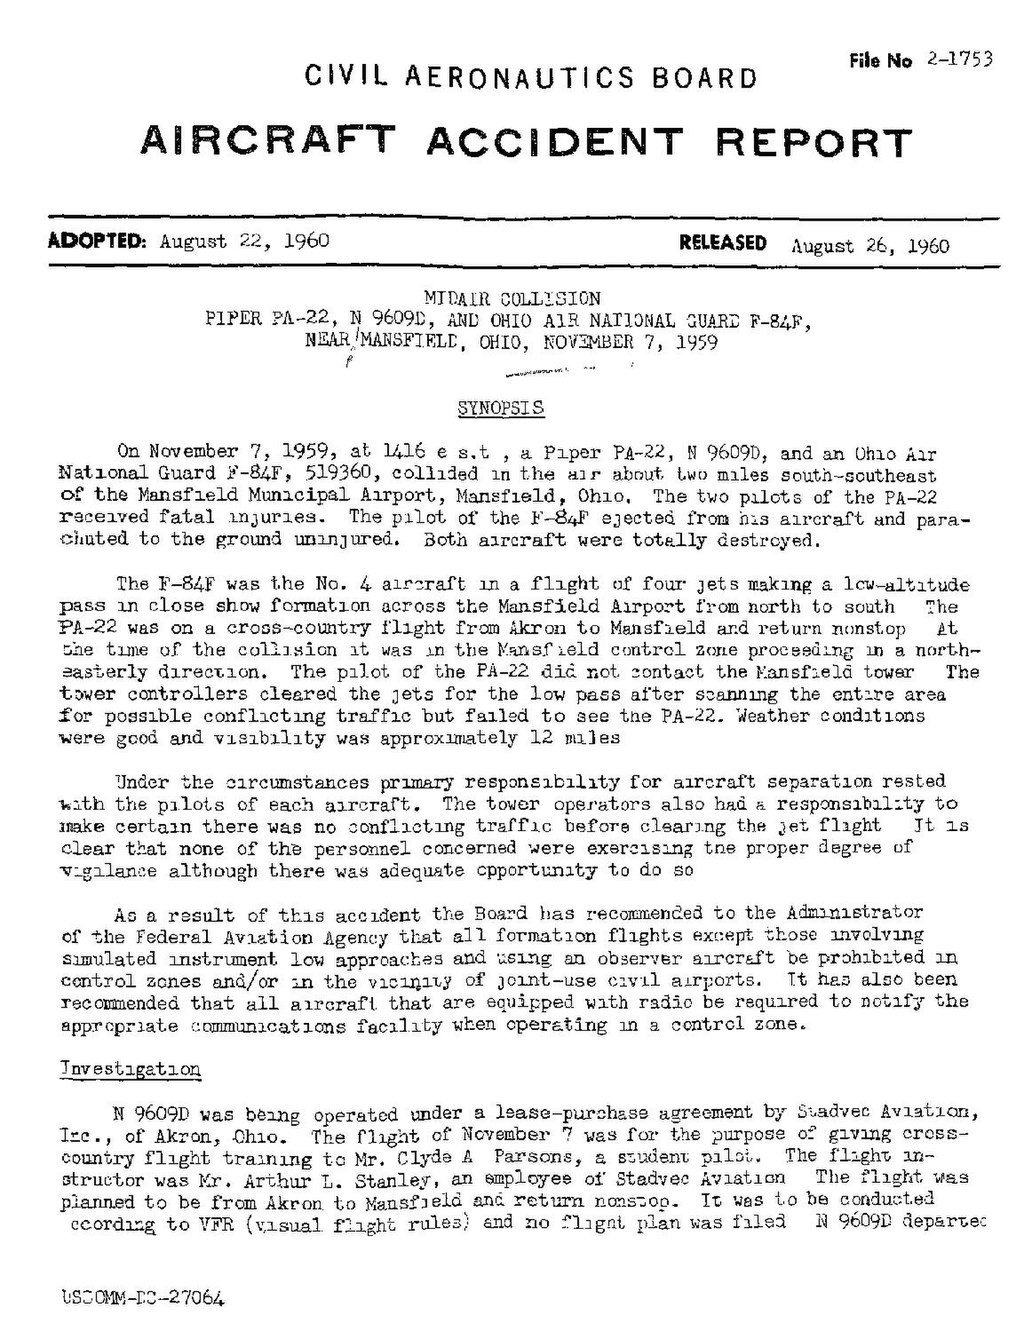 Pagecab Accident Report Mid Air Collision On 7 November 1959pdf1